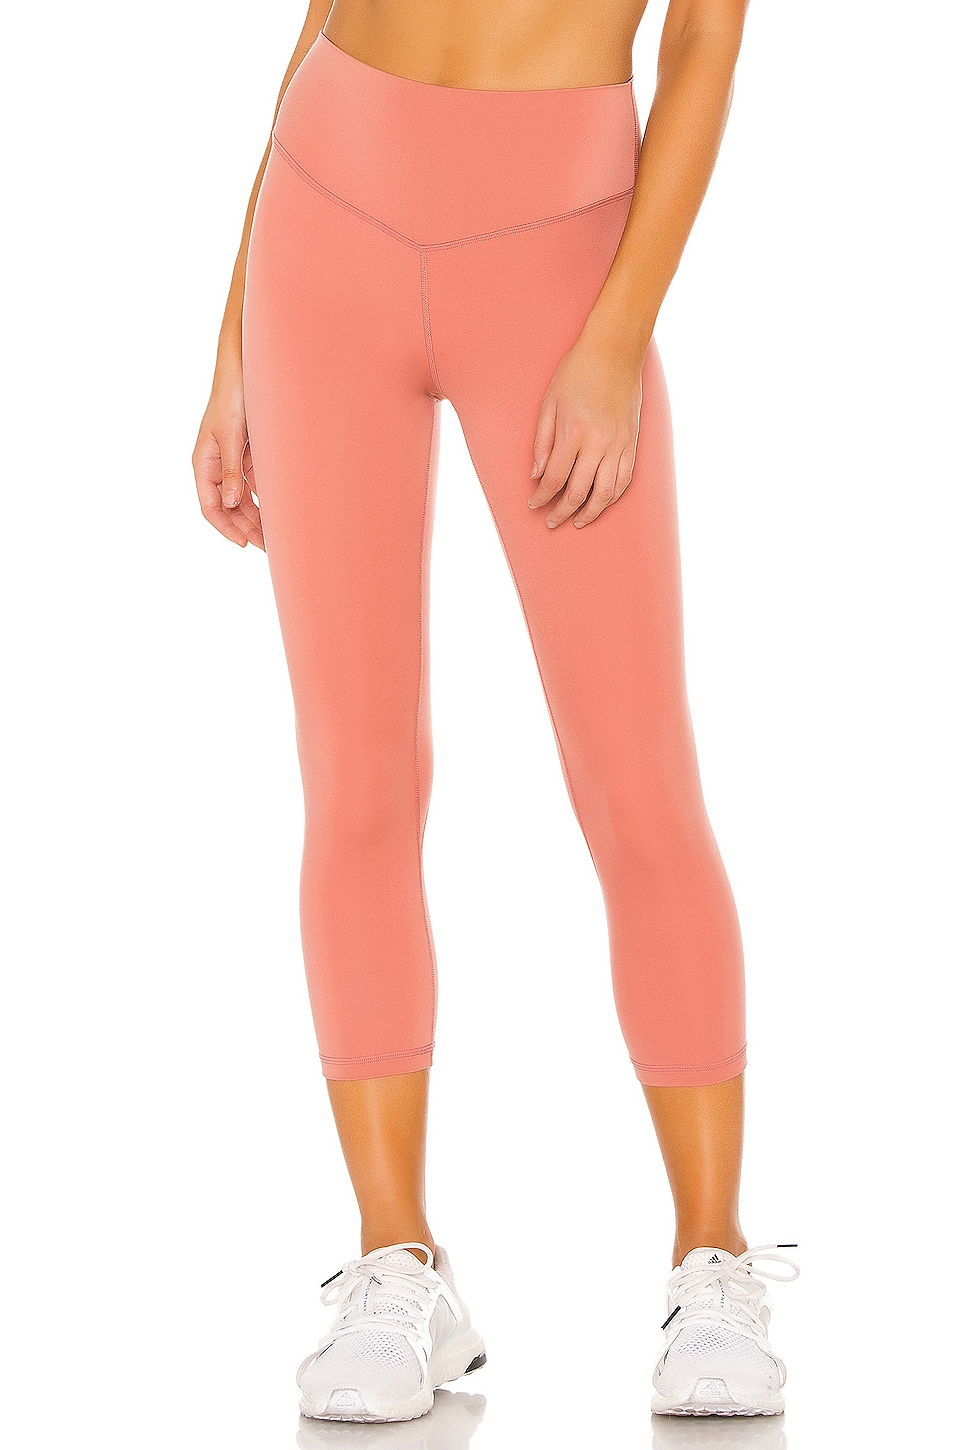 lovewave The Decker Pant in Blush Rose